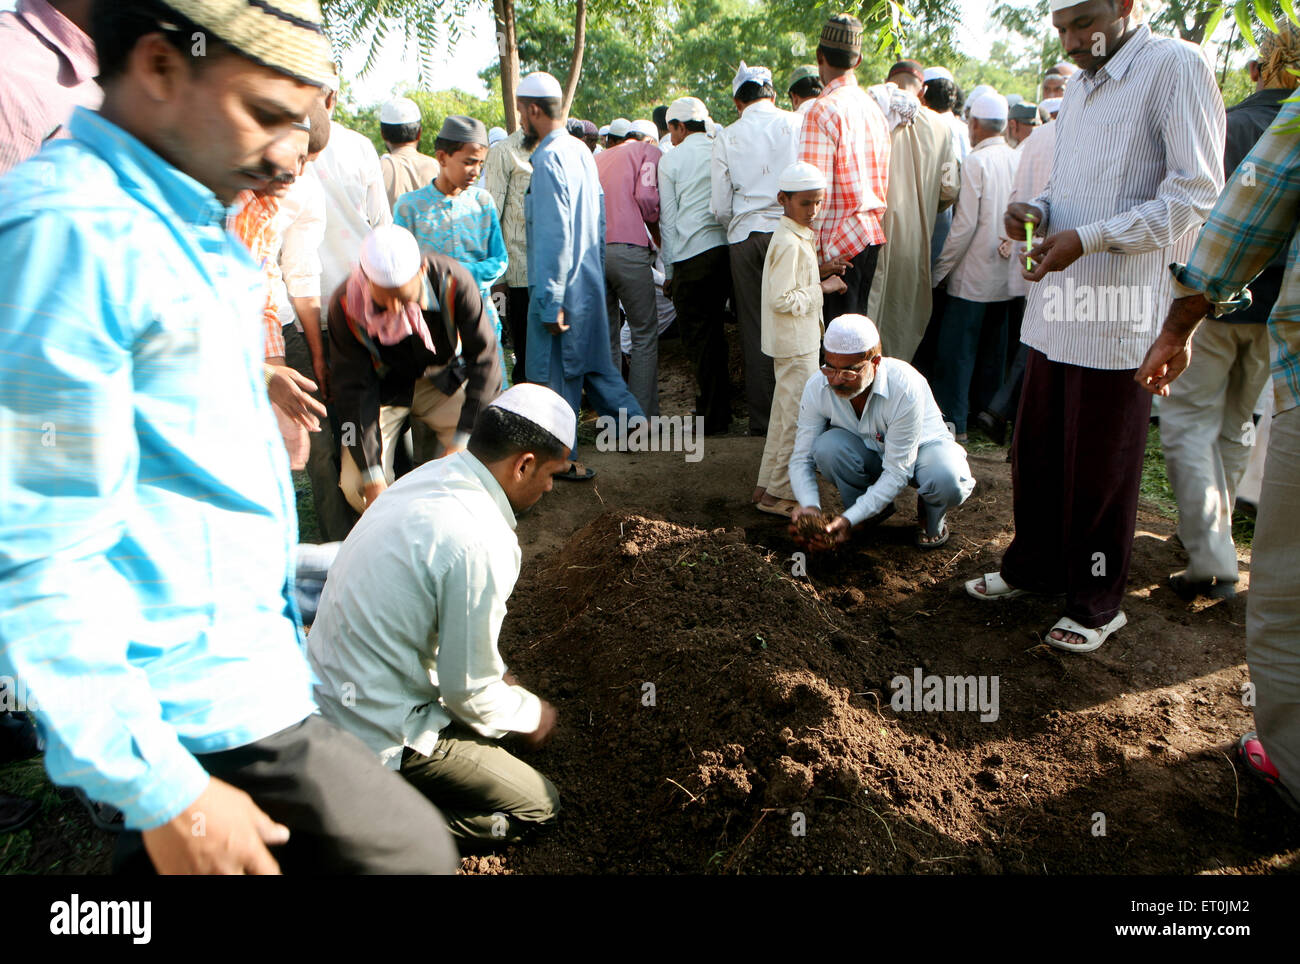 People burying their family members who died in powerful bomb blast on 29th September 2008 at Malegaon ; Maharashtra - Stock Image